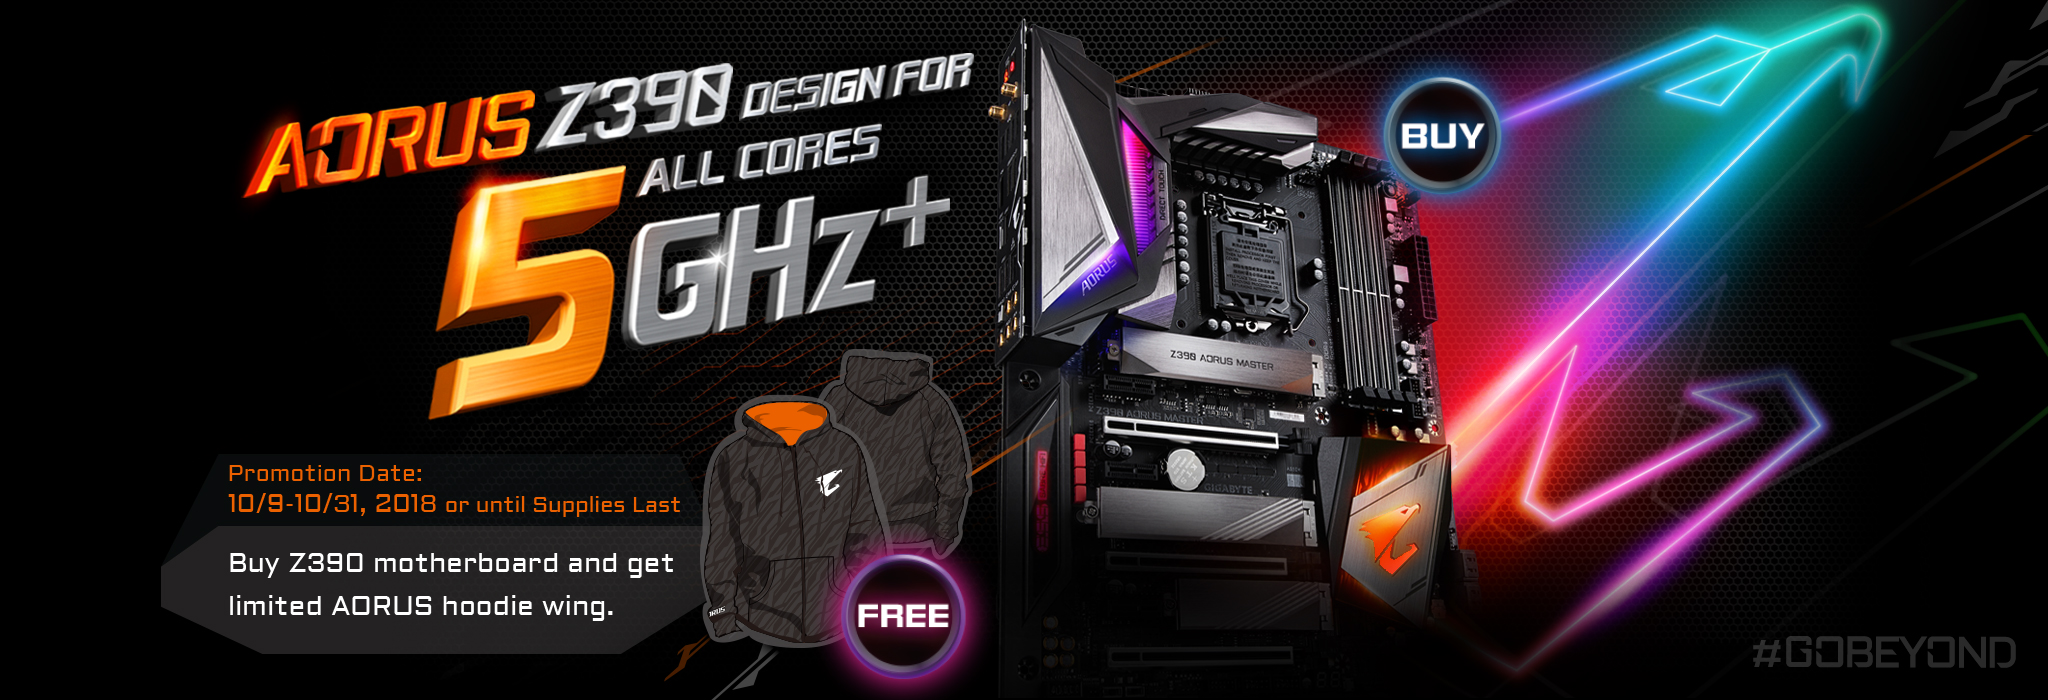 AORUS ALL CORES 5G_Z390 BUNDLE PROMOTION_MY | AORUS